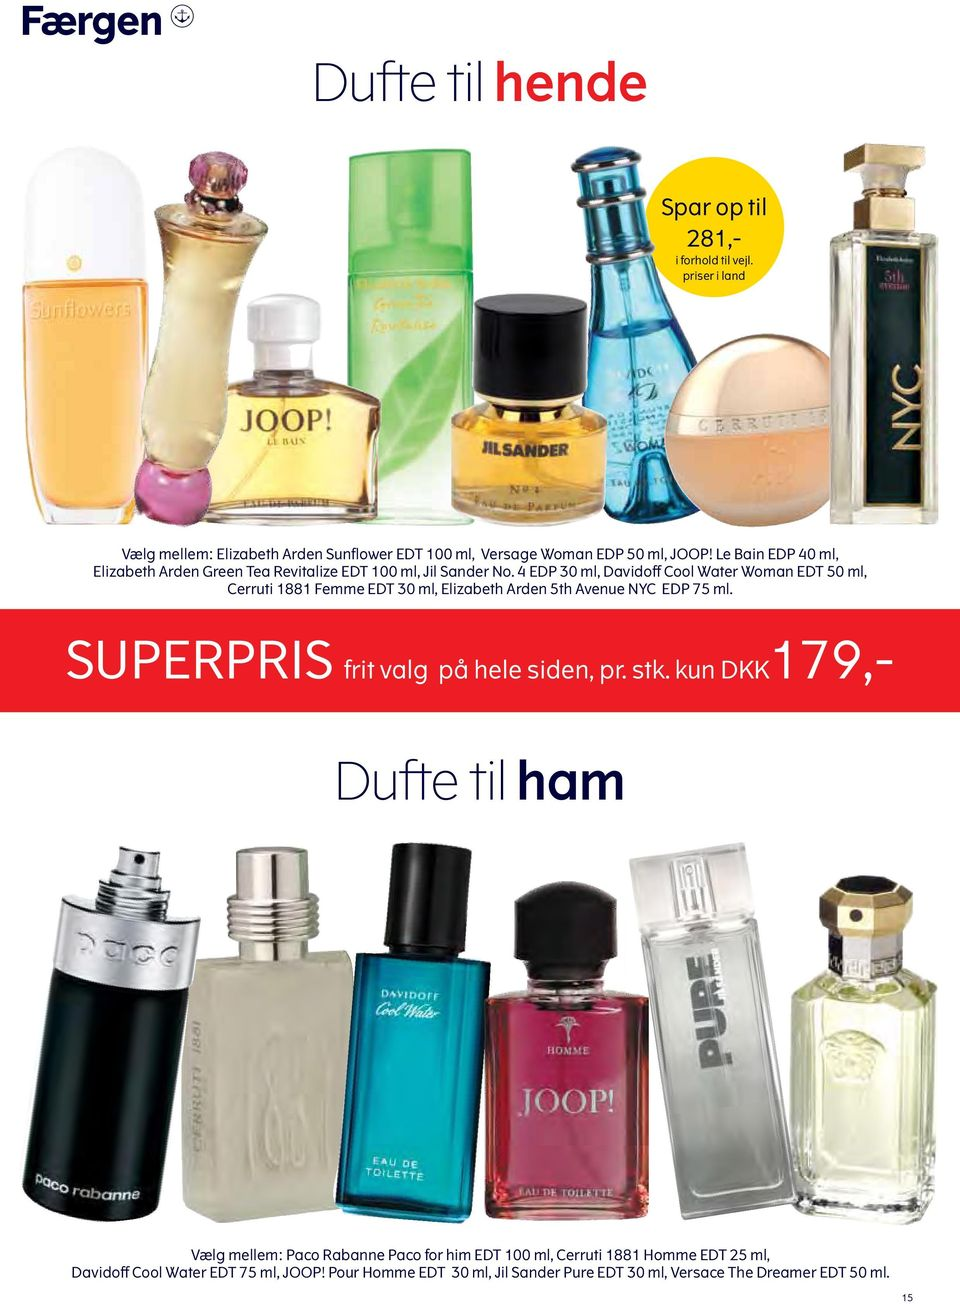 4 EDP 30 ml, Davidoff Cool Water Woman EDT 50 ml, Cerruti 1881 Femme EDT 30 ml, Elizabeth Arden 5th Avenue NYC EDP 75 ml.